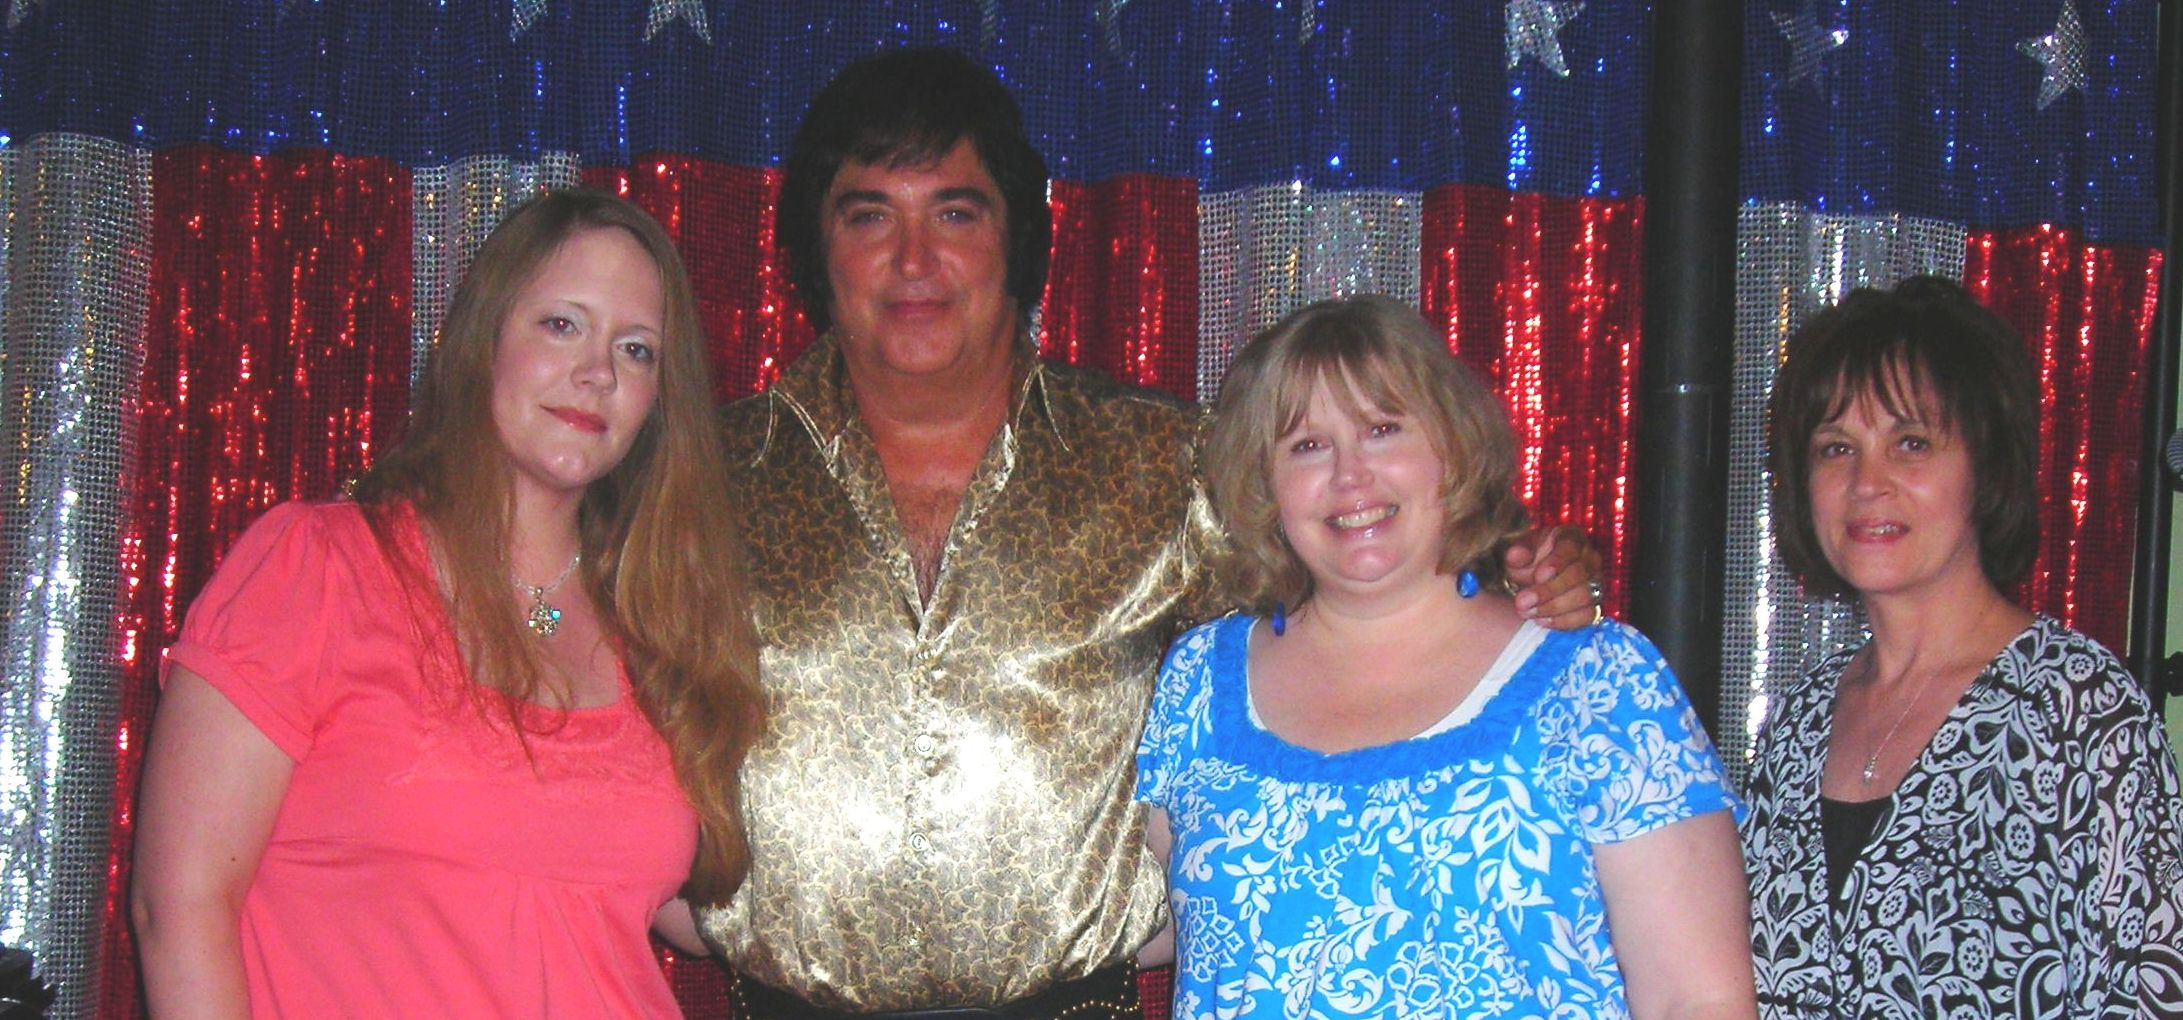 after the show ... a little closeup time with elvis